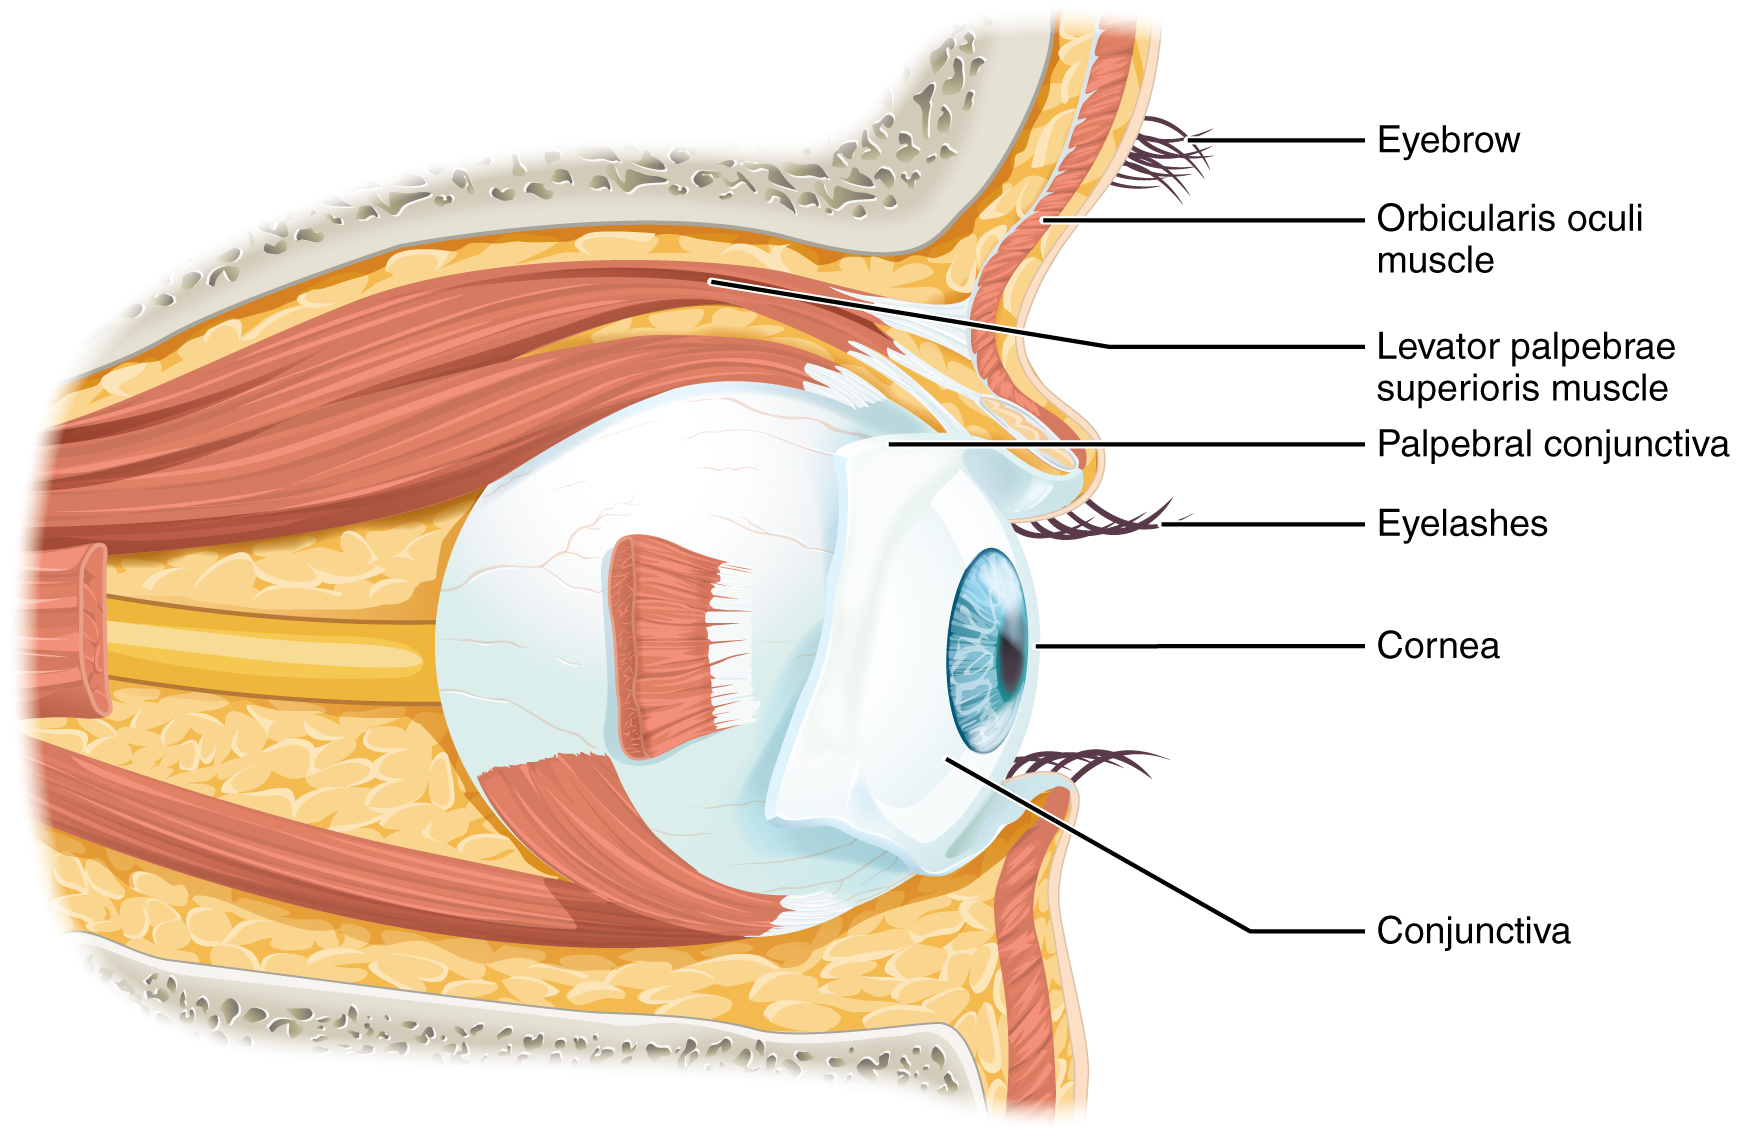 Lateral view of the eye. Image description available.